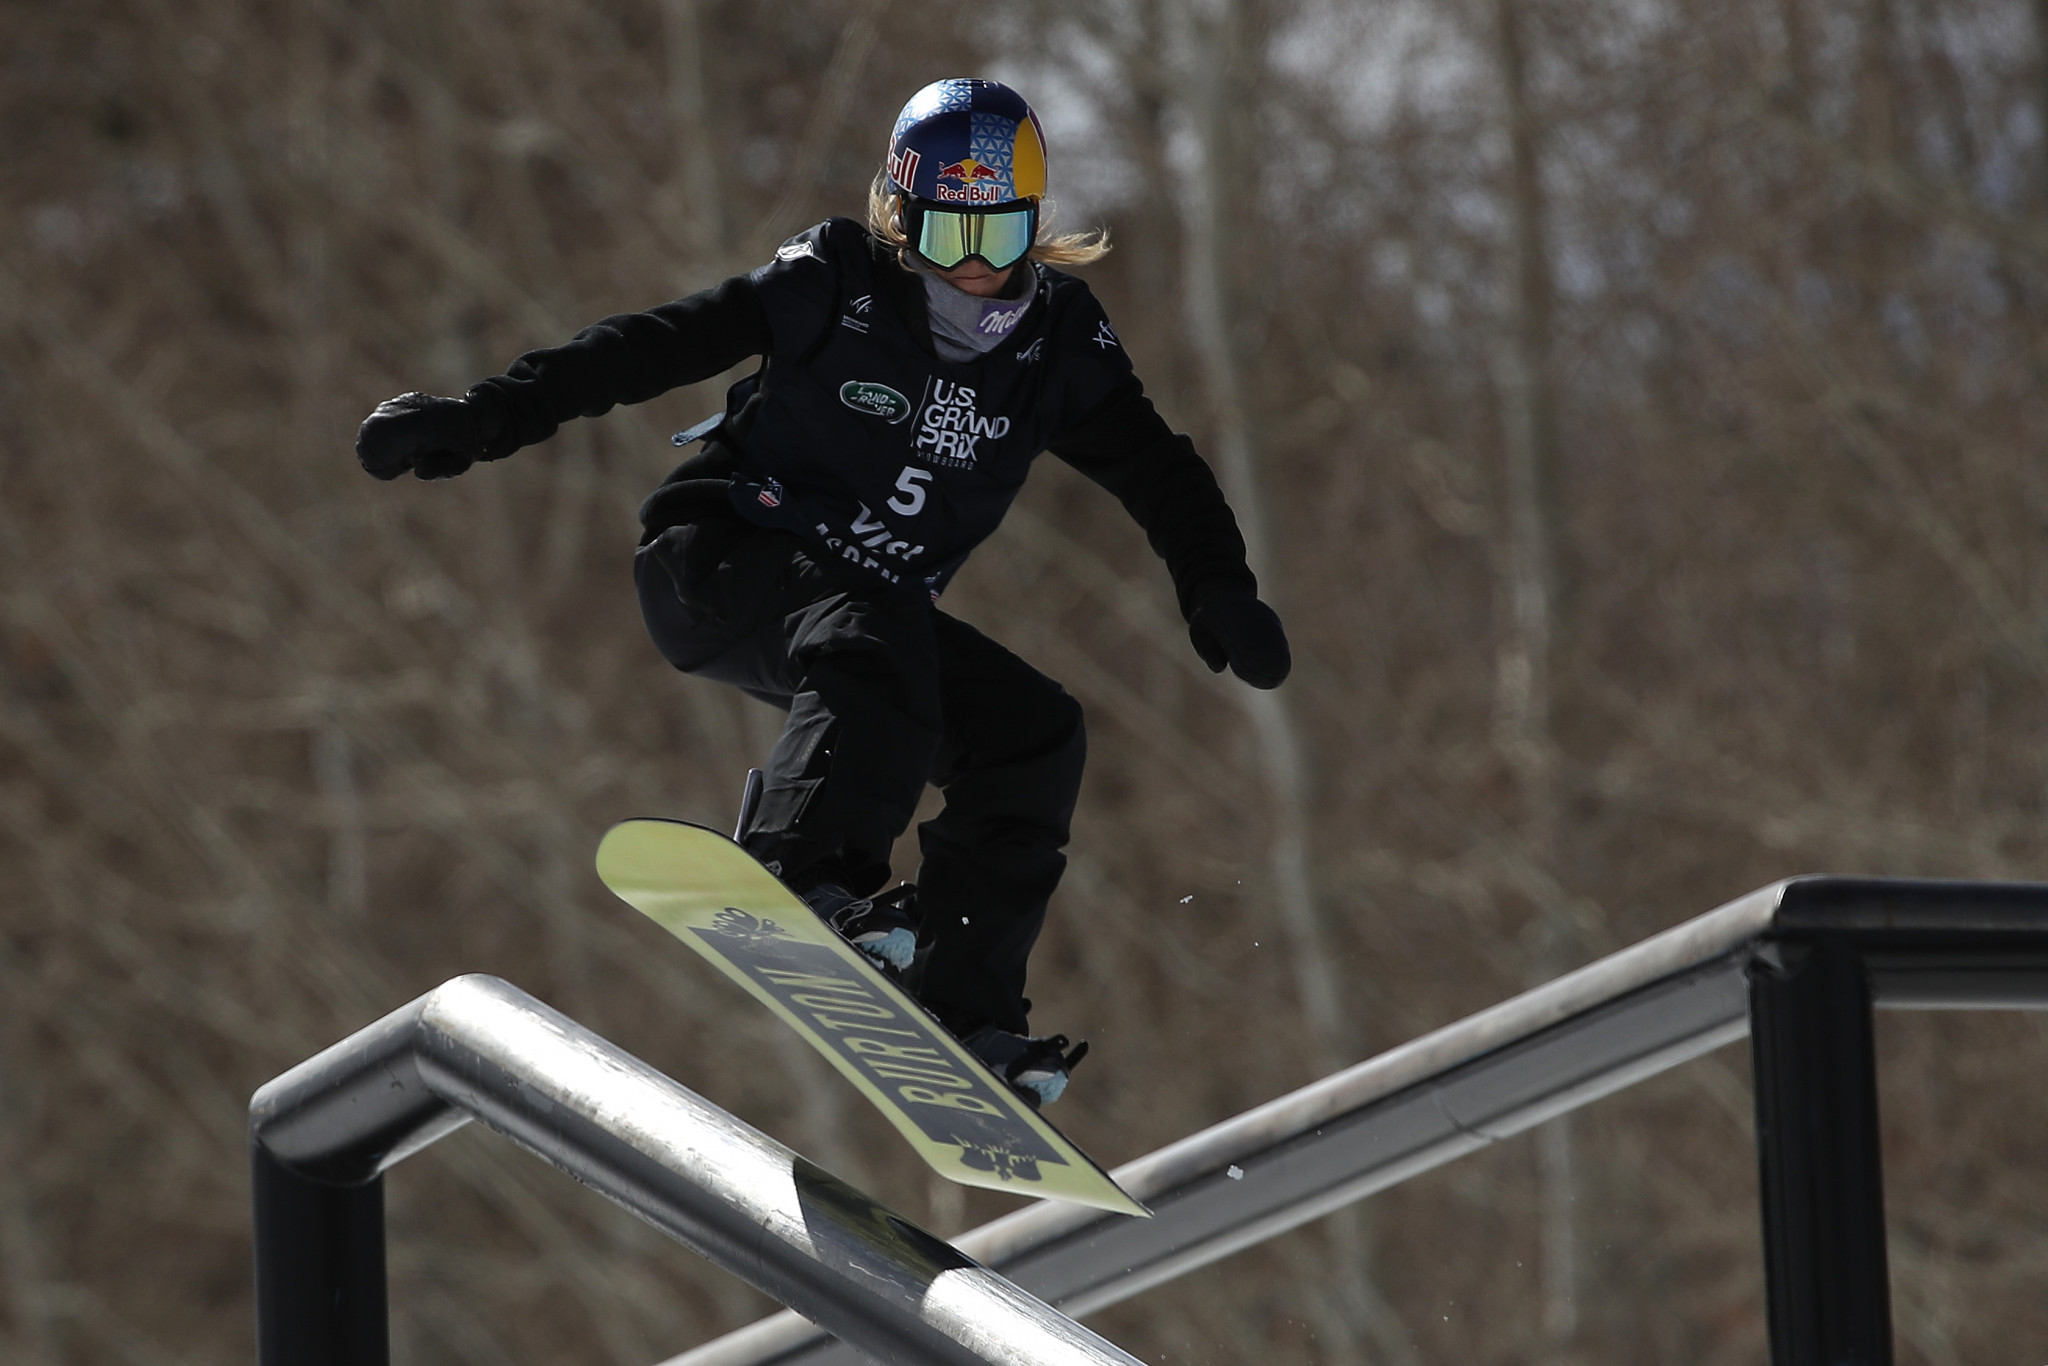 Anna Gasser claimed the women's overall slopestyle World Cup title in Silvaplana after finishing fourth ©Getty Images